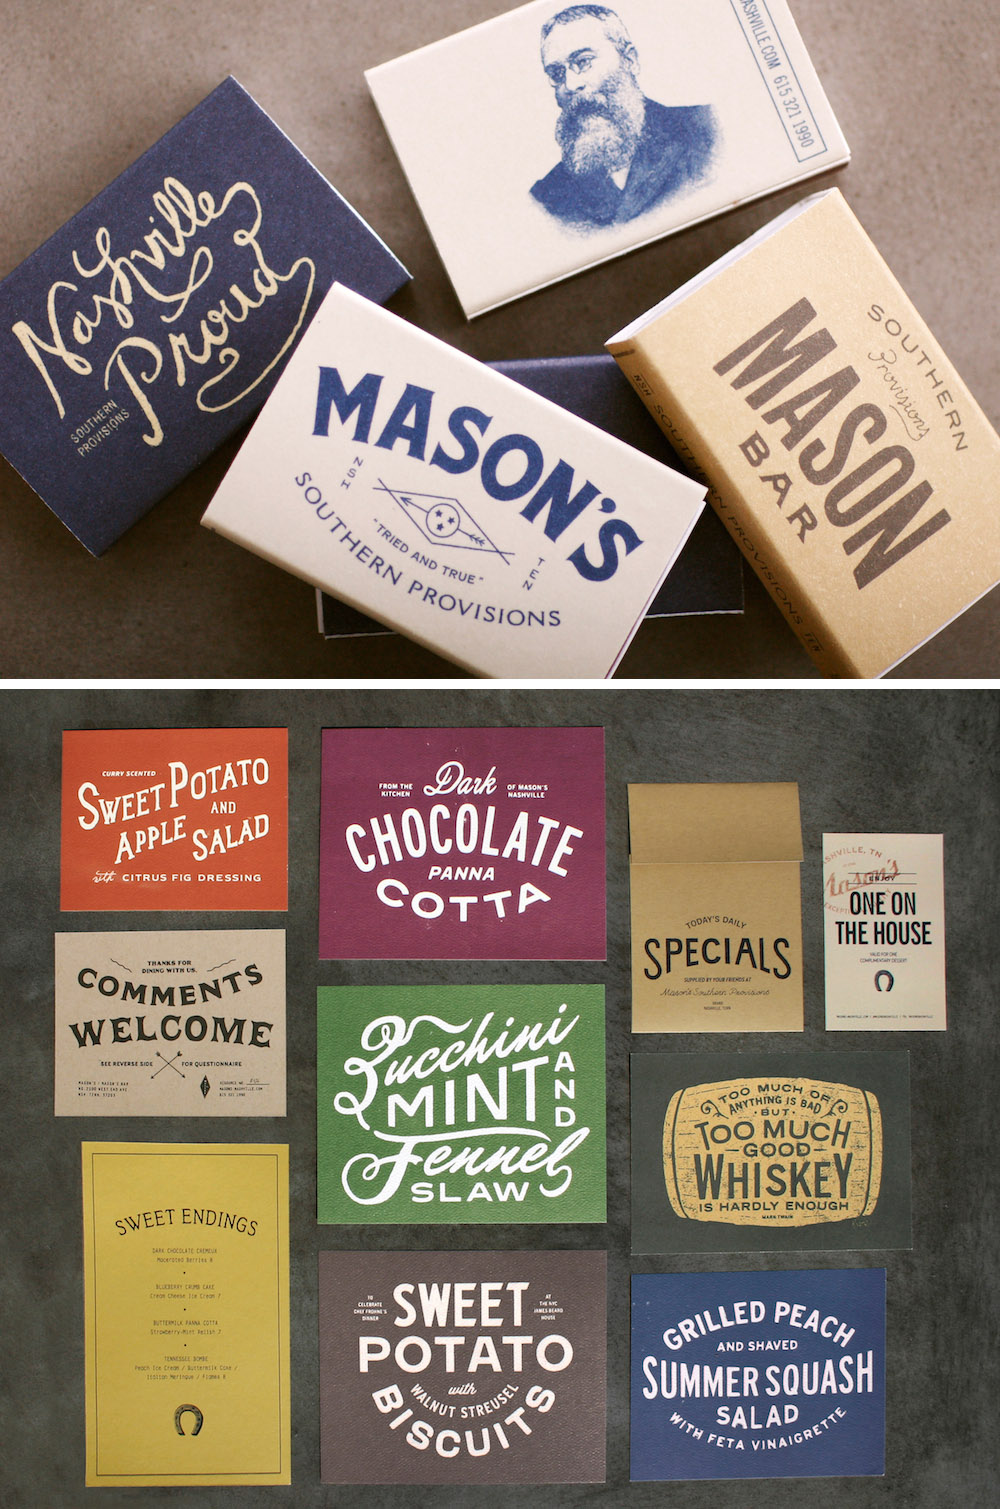 Mason's Multimedia Campaign by Green Olive Media